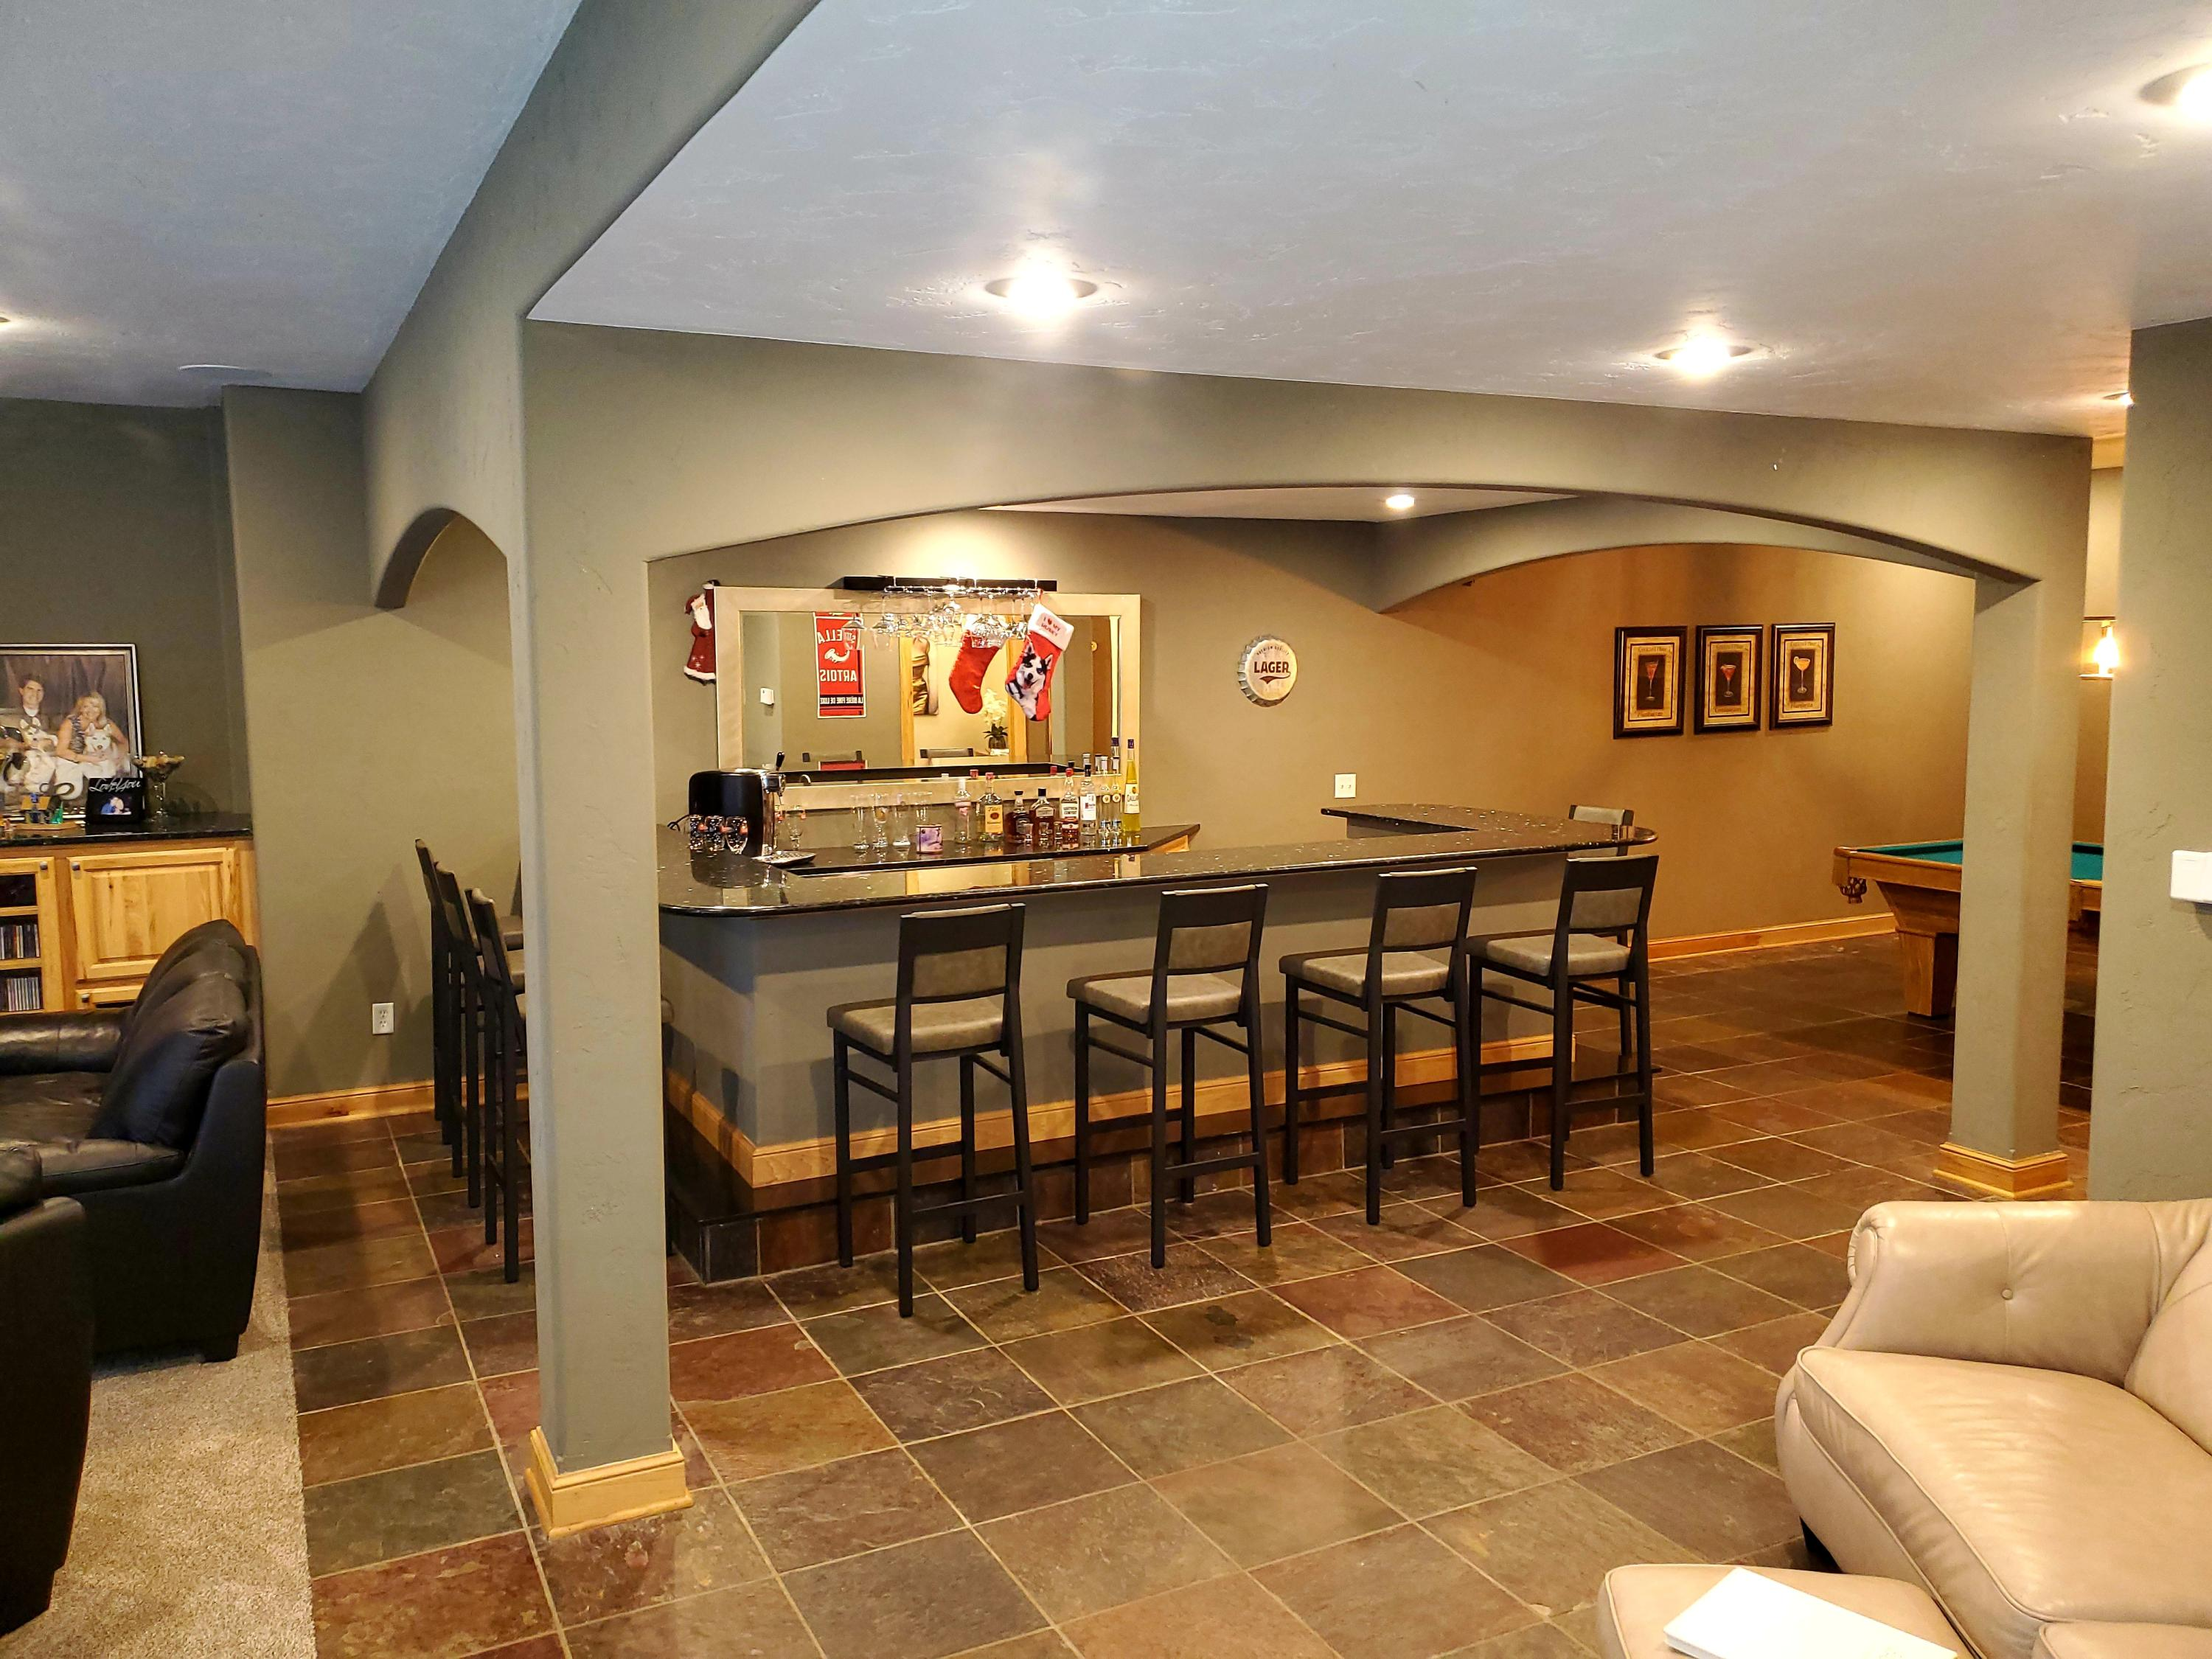 N4990 Helenville Rd, Farmington, Wisconsin 53137, 4 Bedrooms Bedrooms, 10 Rooms Rooms,3 BathroomsBathrooms,Single-family,For Sale,Helenville Rd,1722292